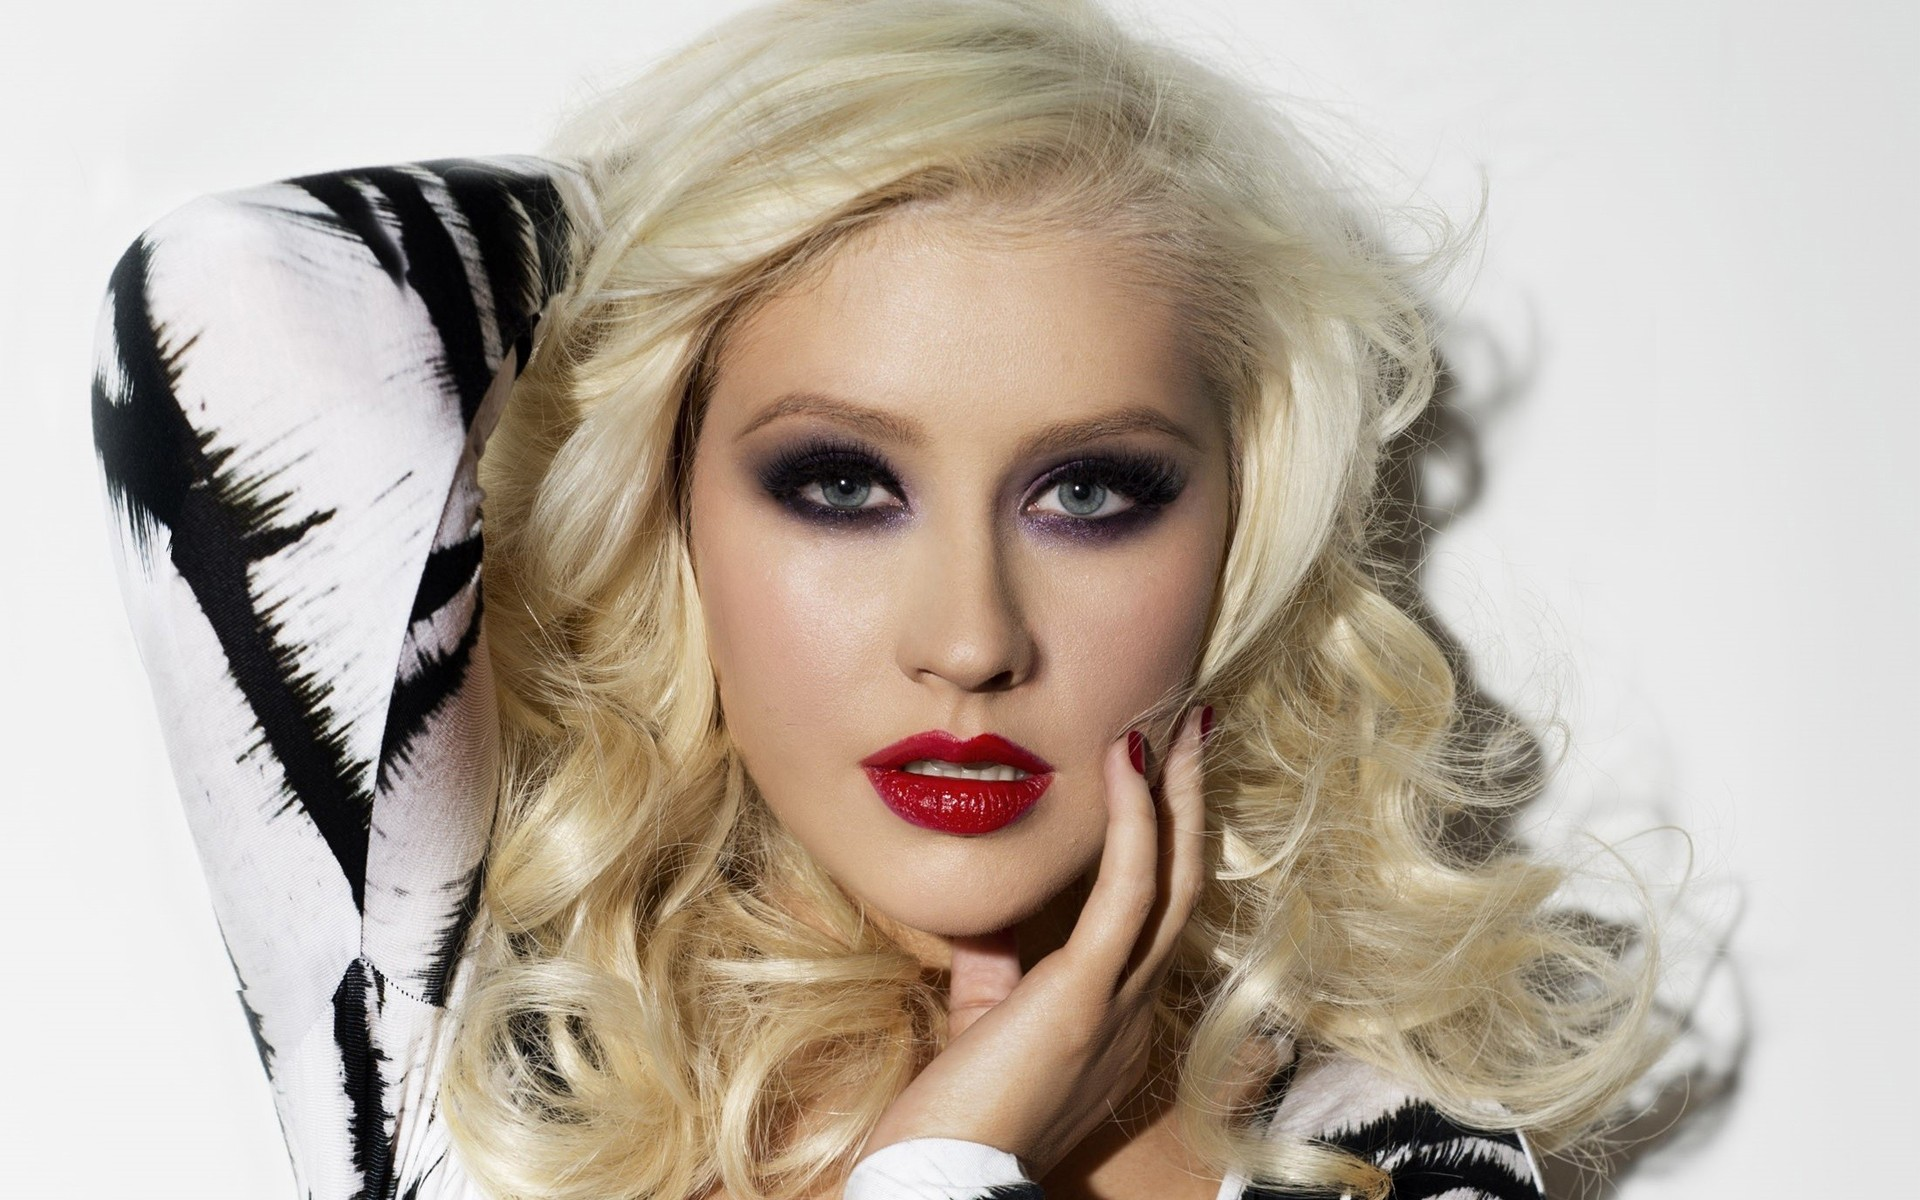 Christina Aguilera Pic Wallpaper High Definition High